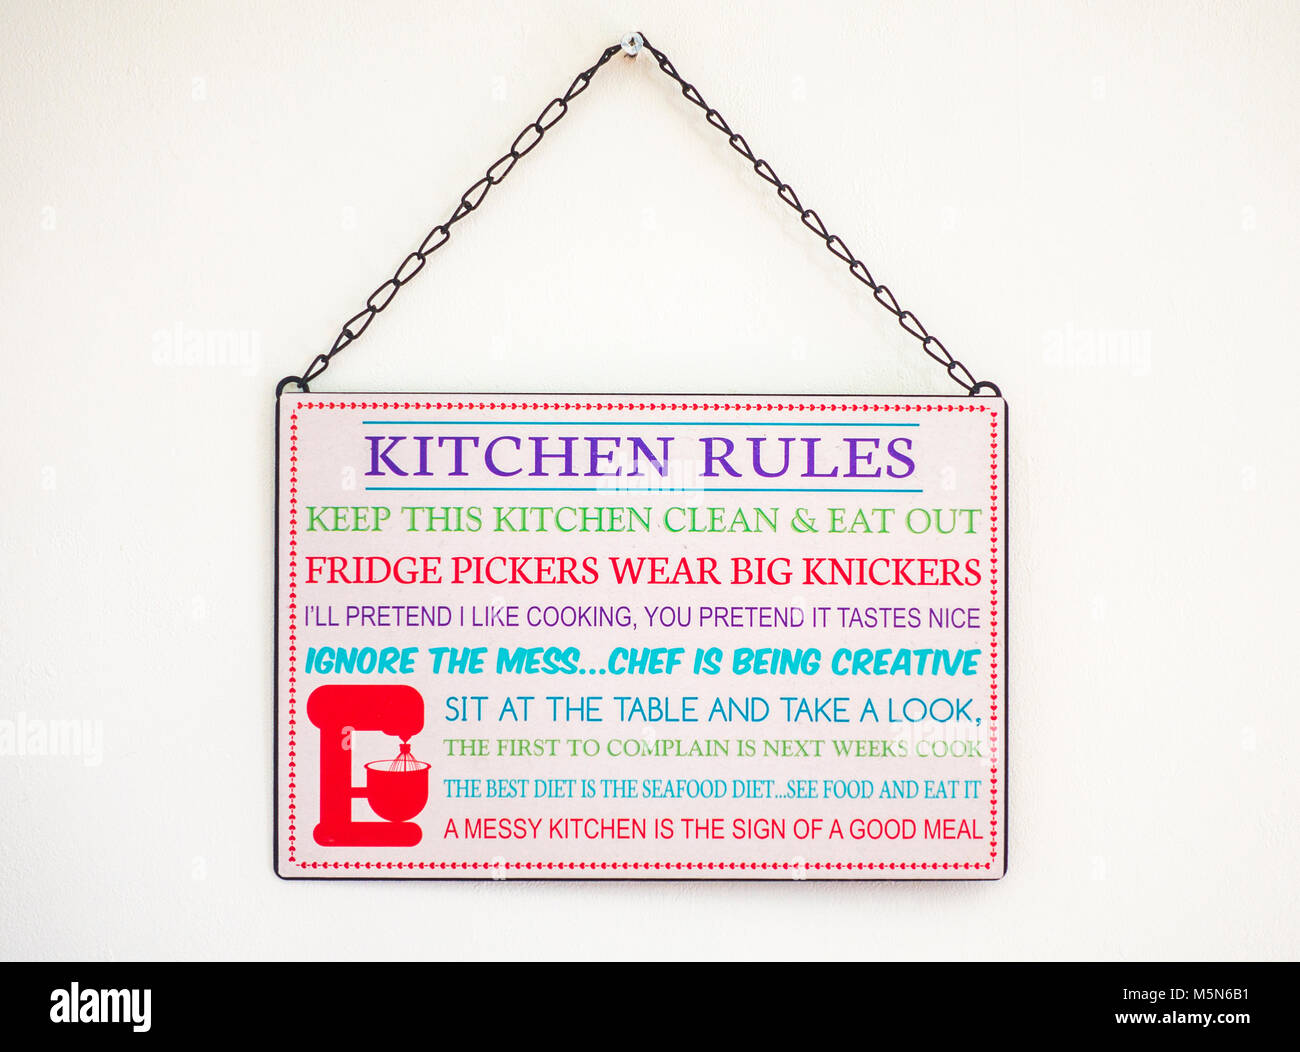 List of amusing kitchen rules, printed on an oblong sign, hanging by a chain on an interior home wall. England, - Stock Image